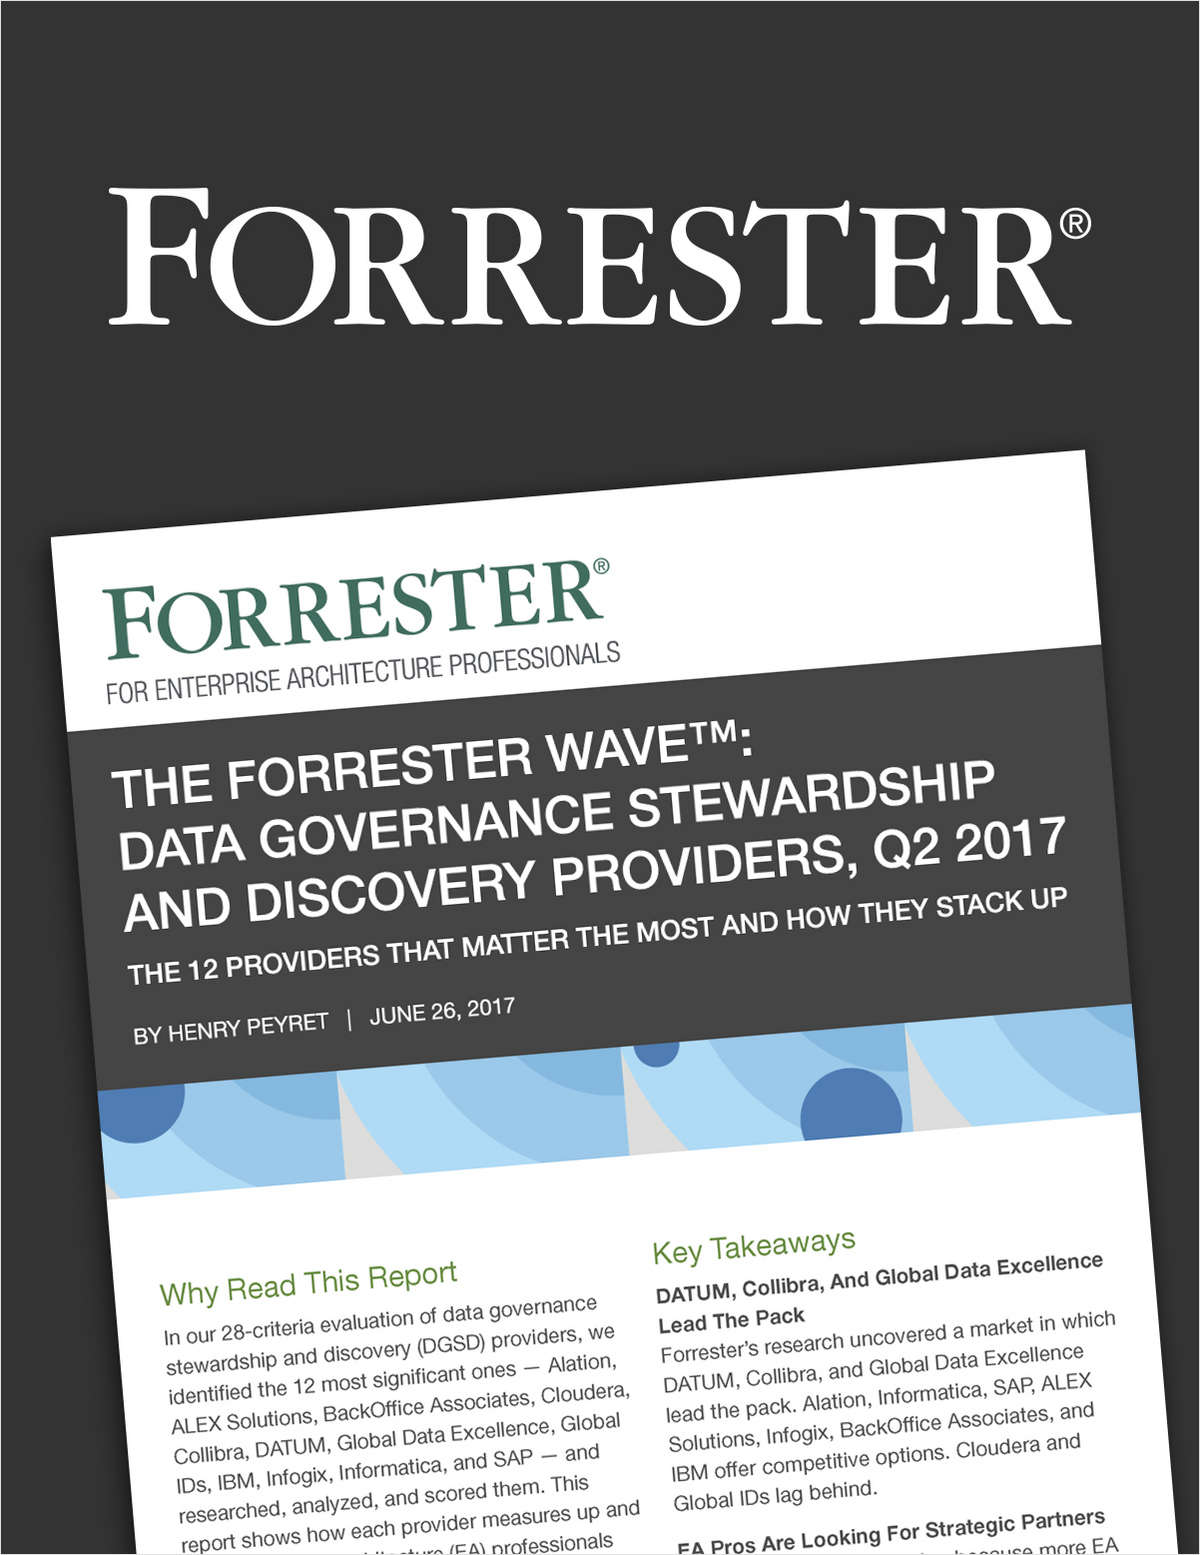 The Forrester Wave™: Data Governance Stewardship and Discovery Providers